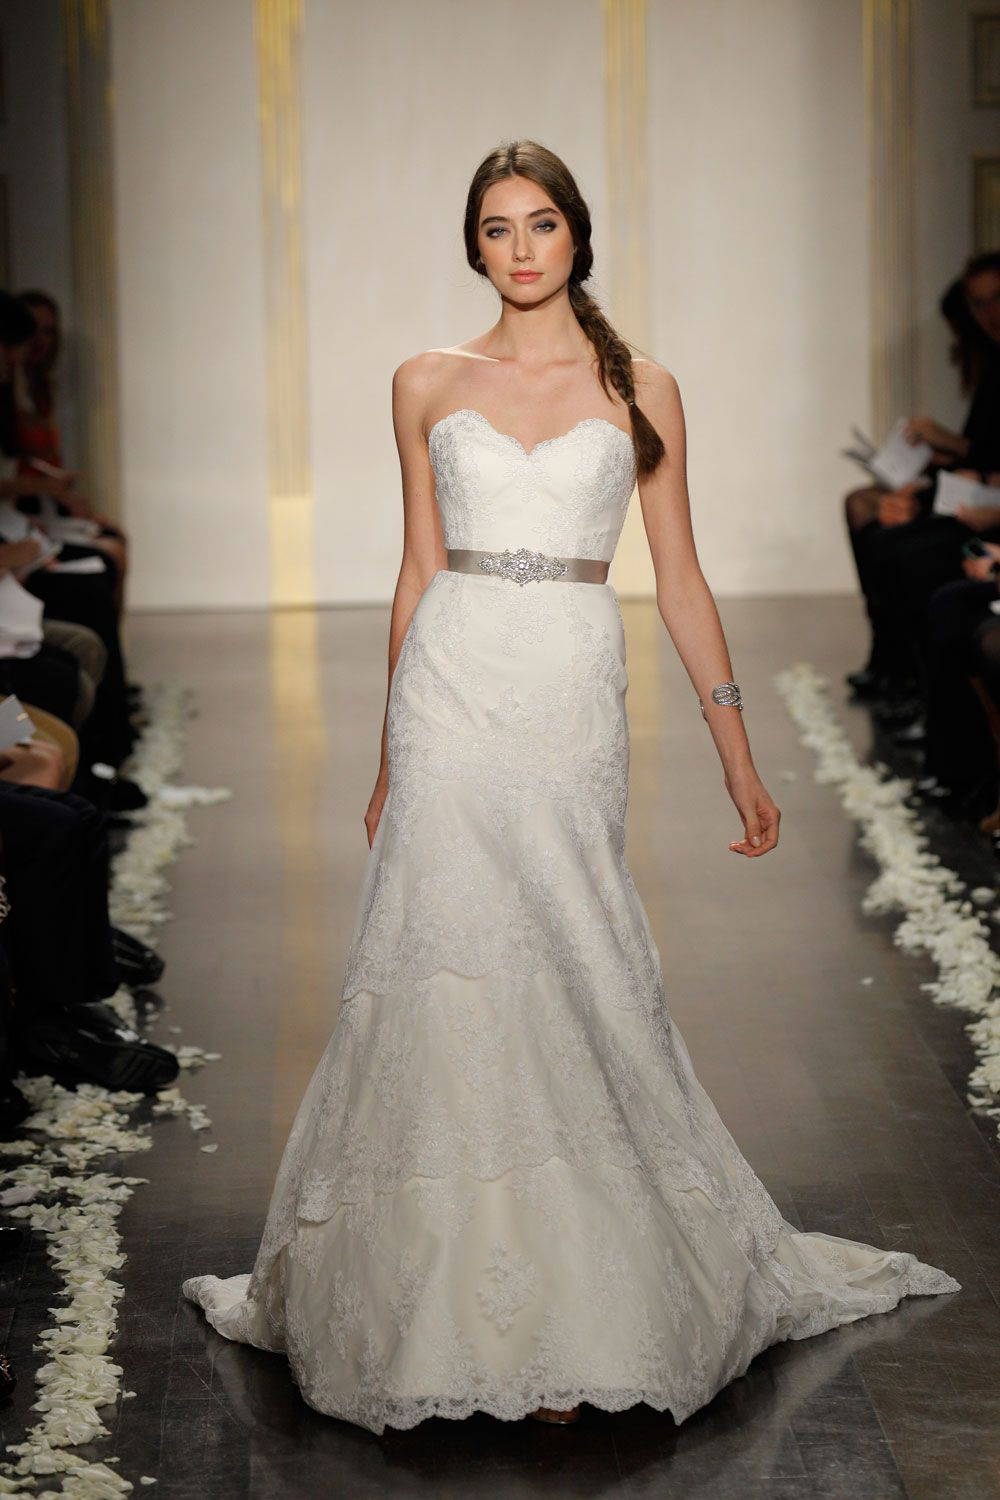 Tara keely 2206 fashion pinterest google search search and is anyone selling the tara keely wedding dress styles 2206 or ombrellifo Choice Image